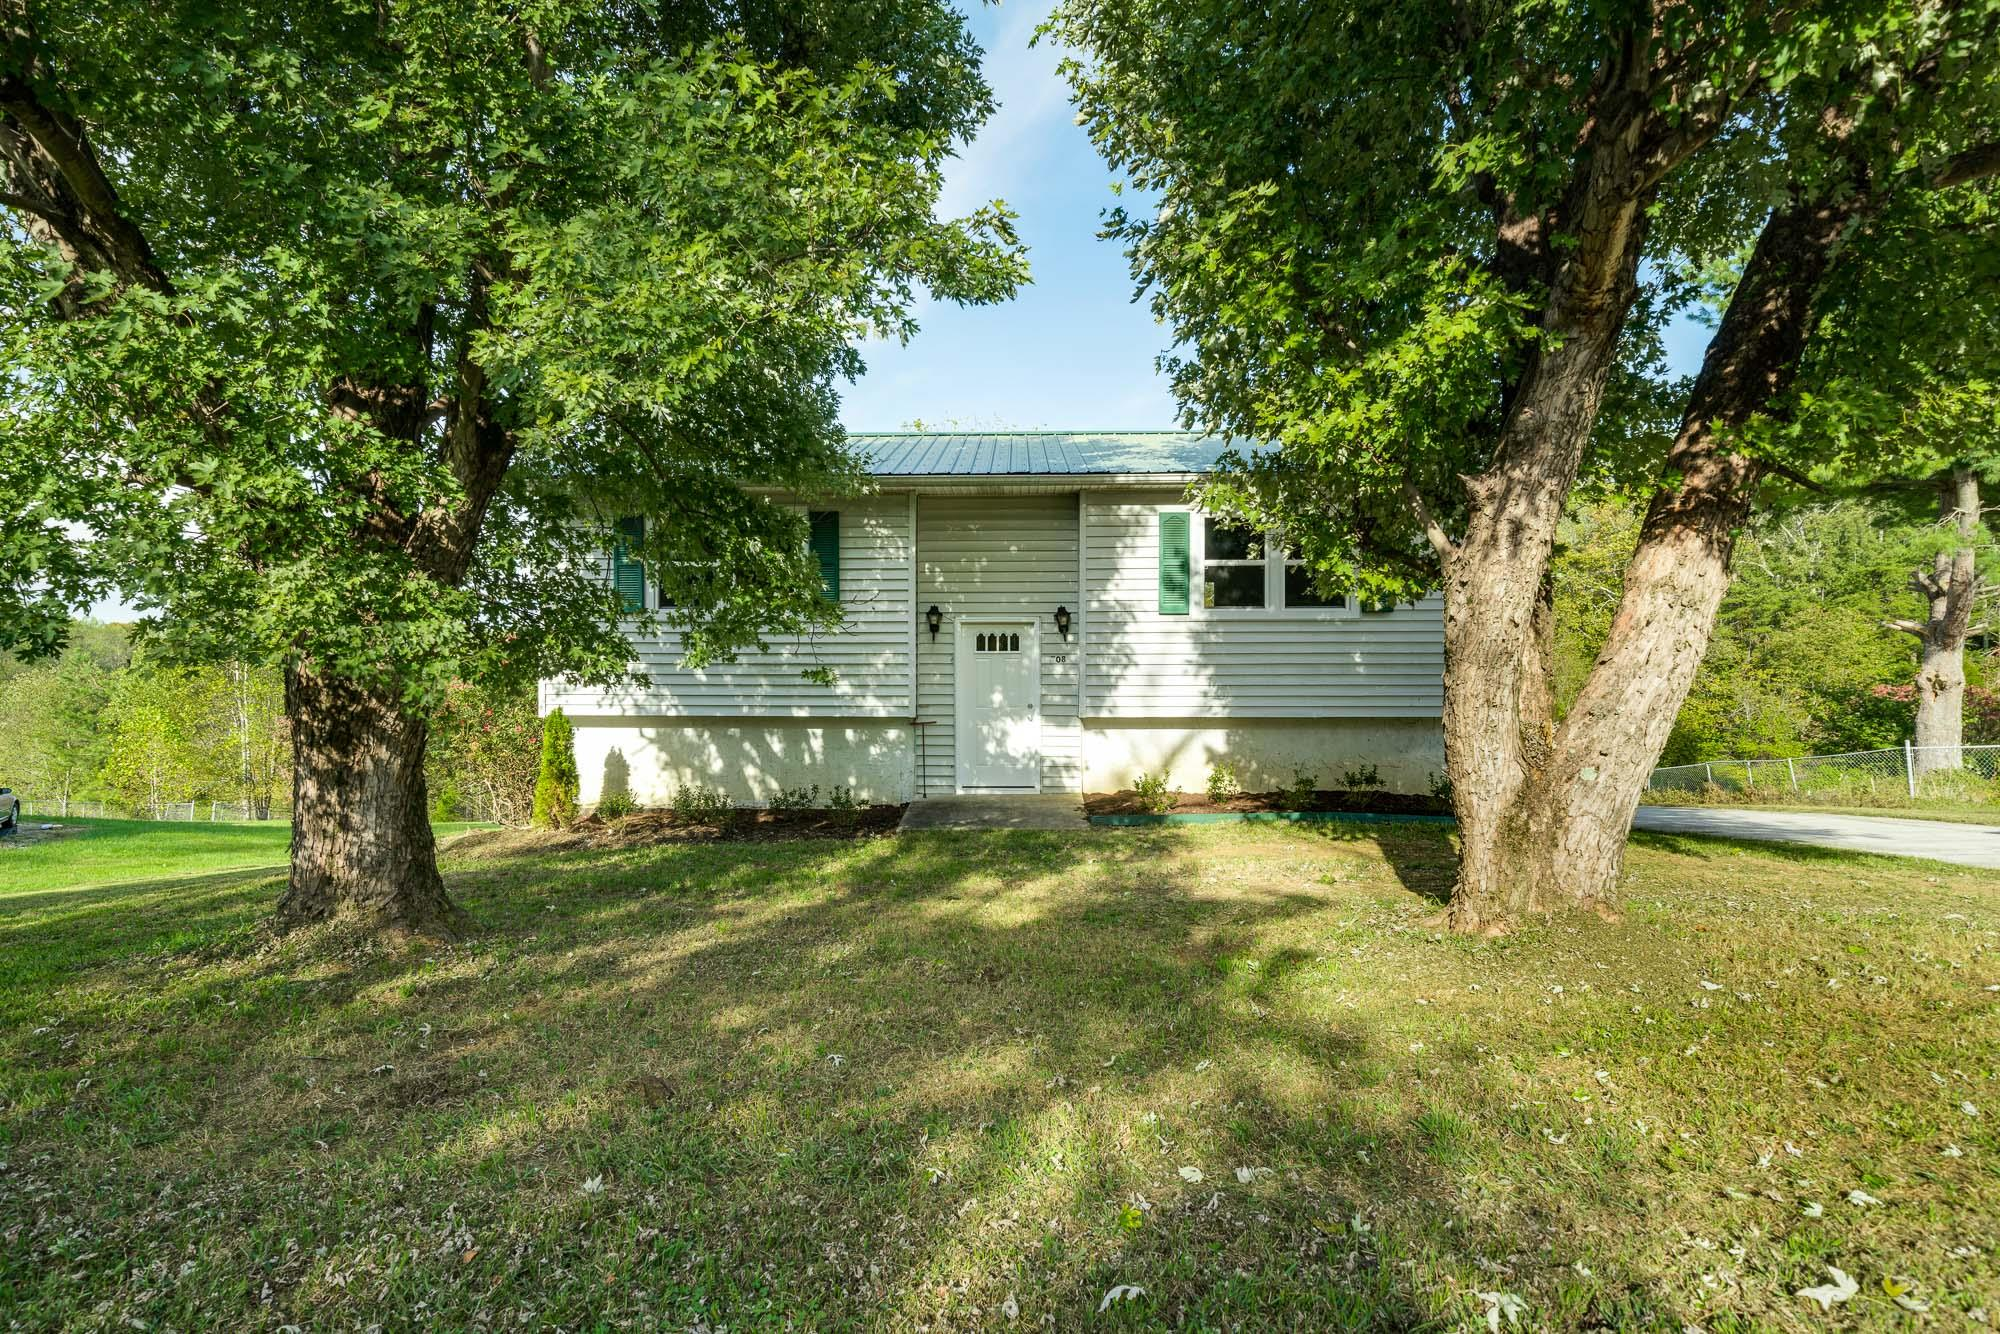 4708 Village Rd, Cookeville, TN 38506 - Cookeville, TN real estate listing